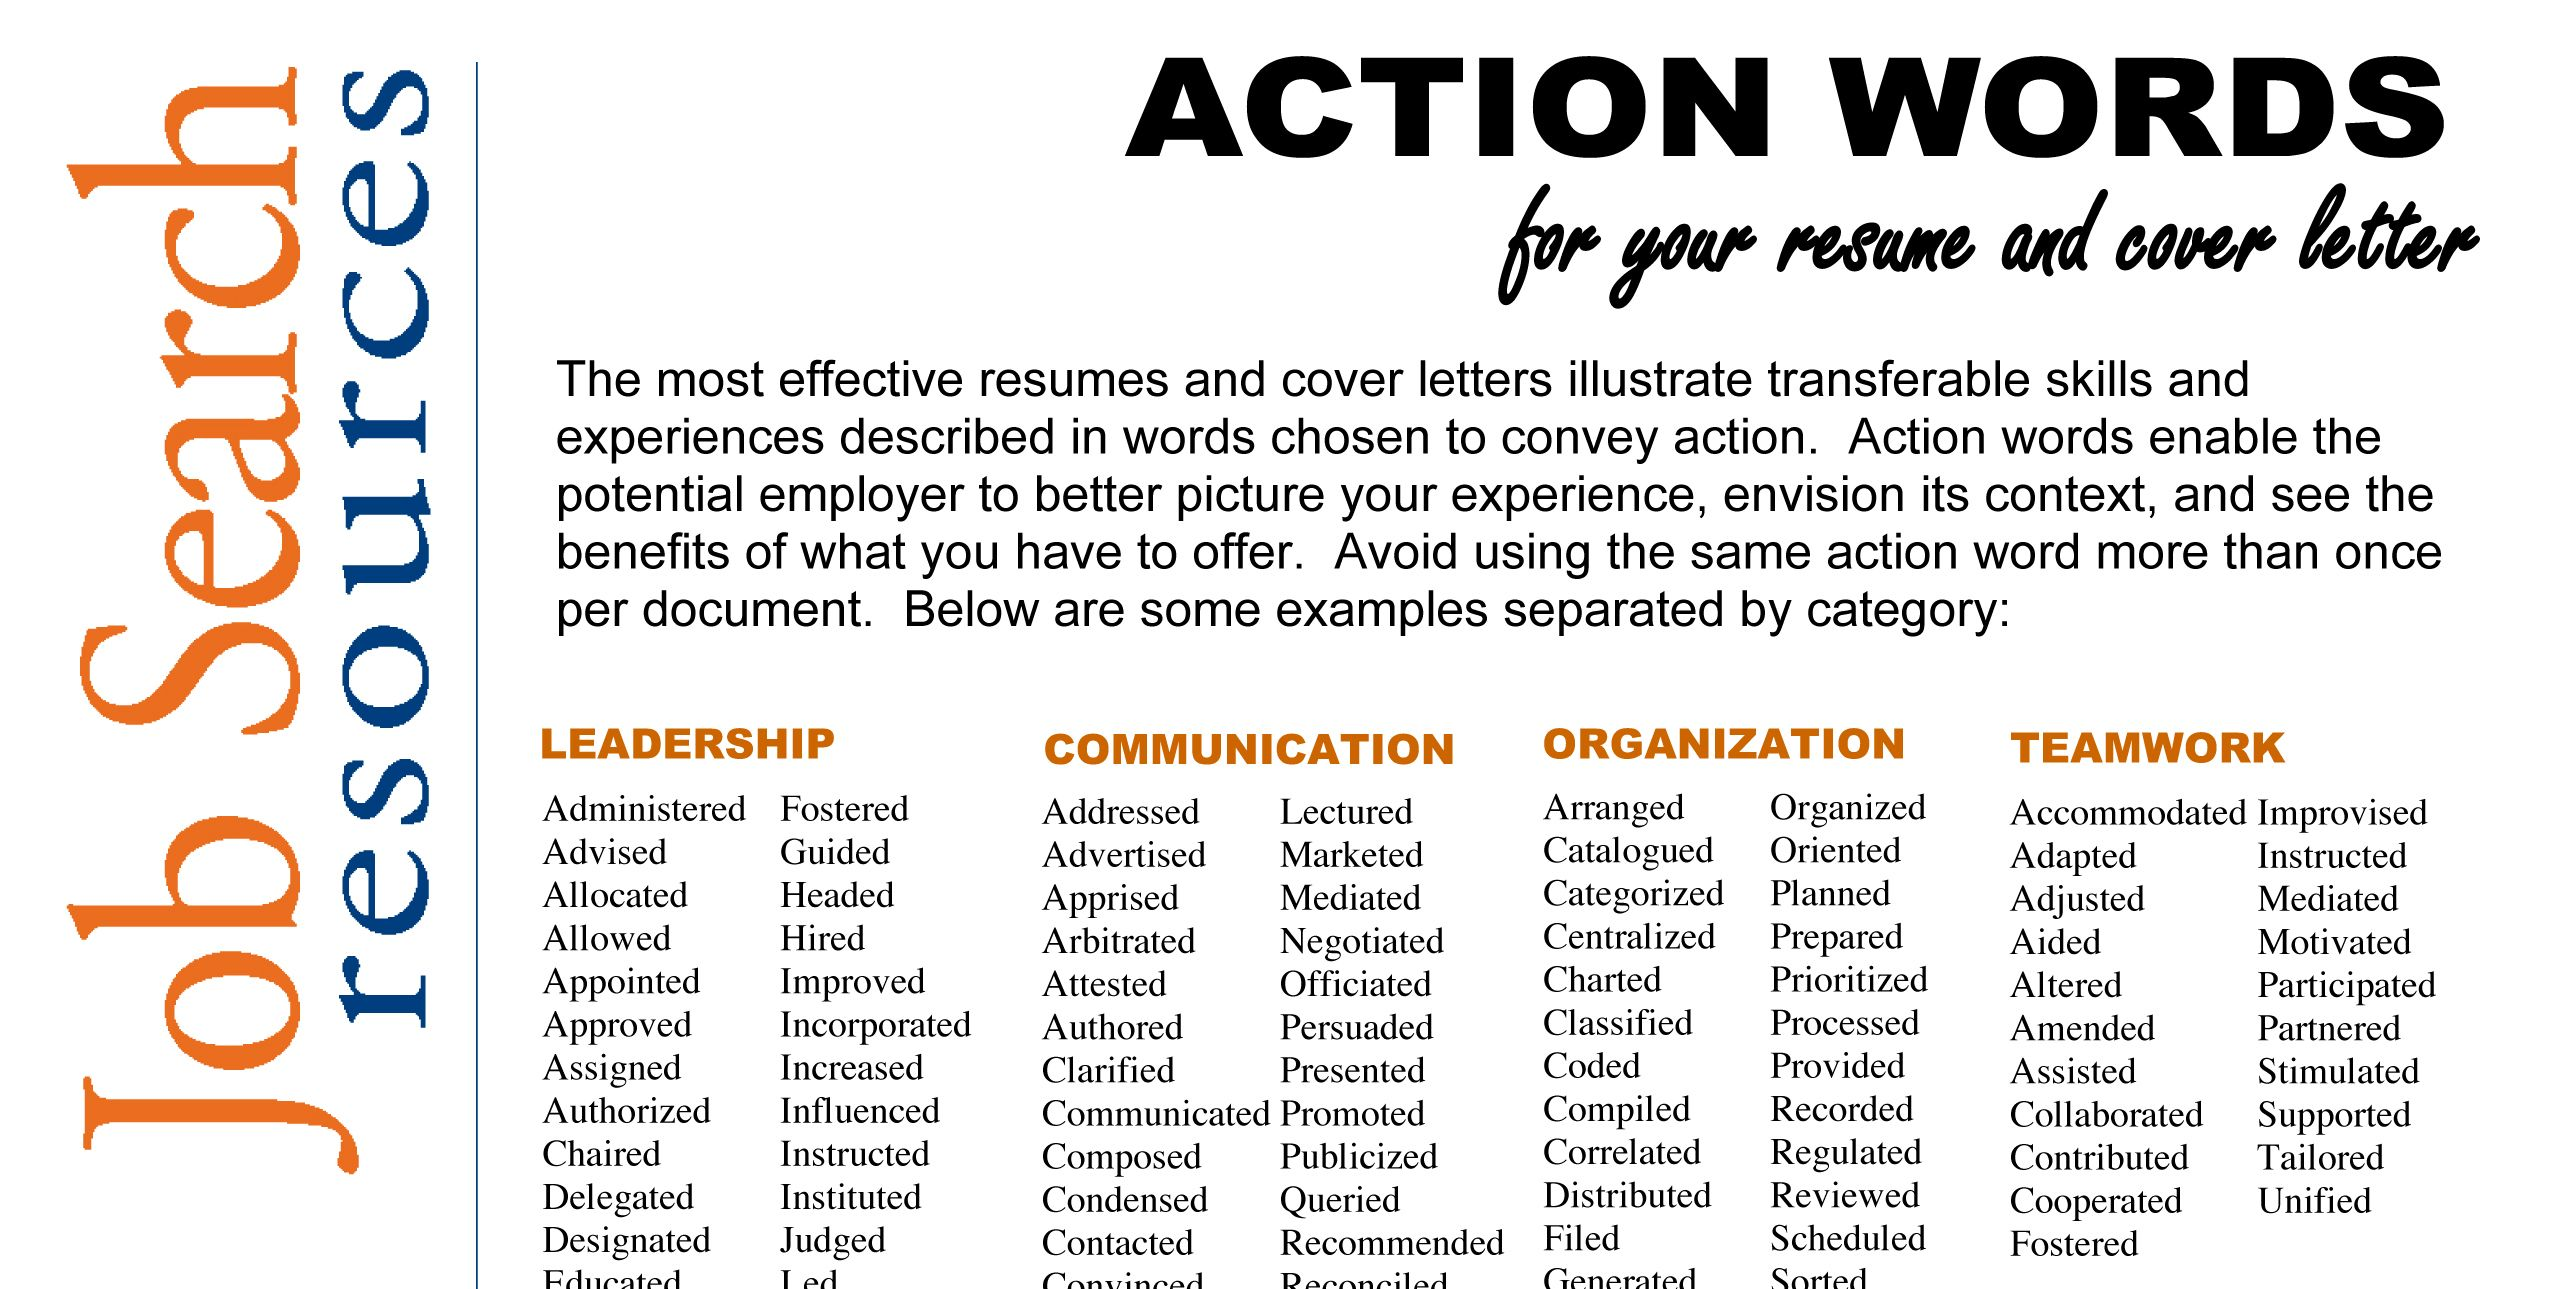 Action Words For Resume Mauerkirchenfo